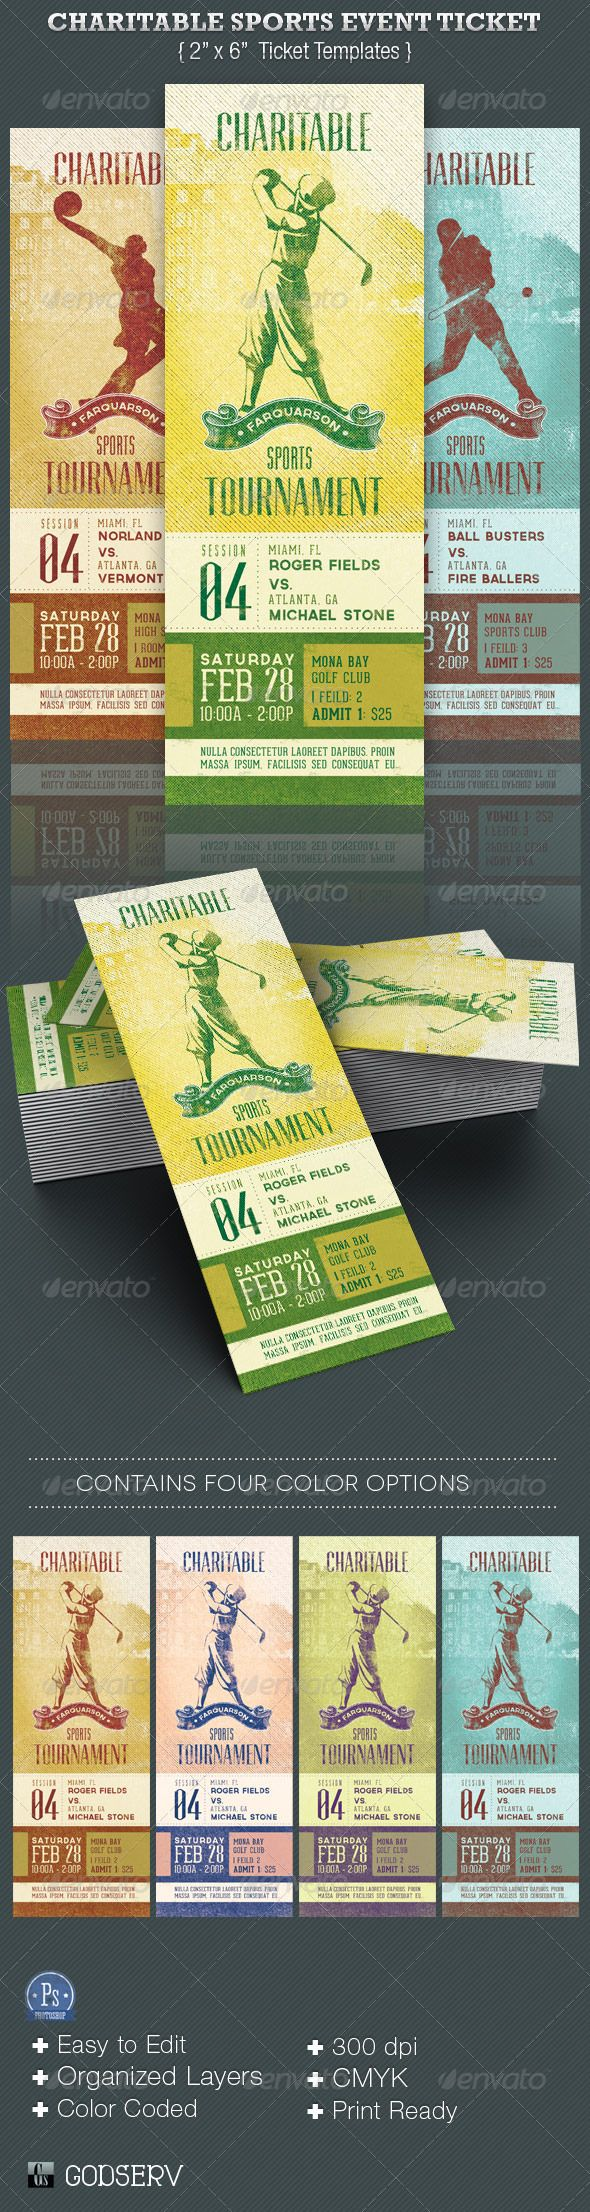 Best 25+ Sporting Event Tickets Ideas On Pinterest | Event Ticket Printing,  Quirky Wedding Save The Date And Sports Wedding